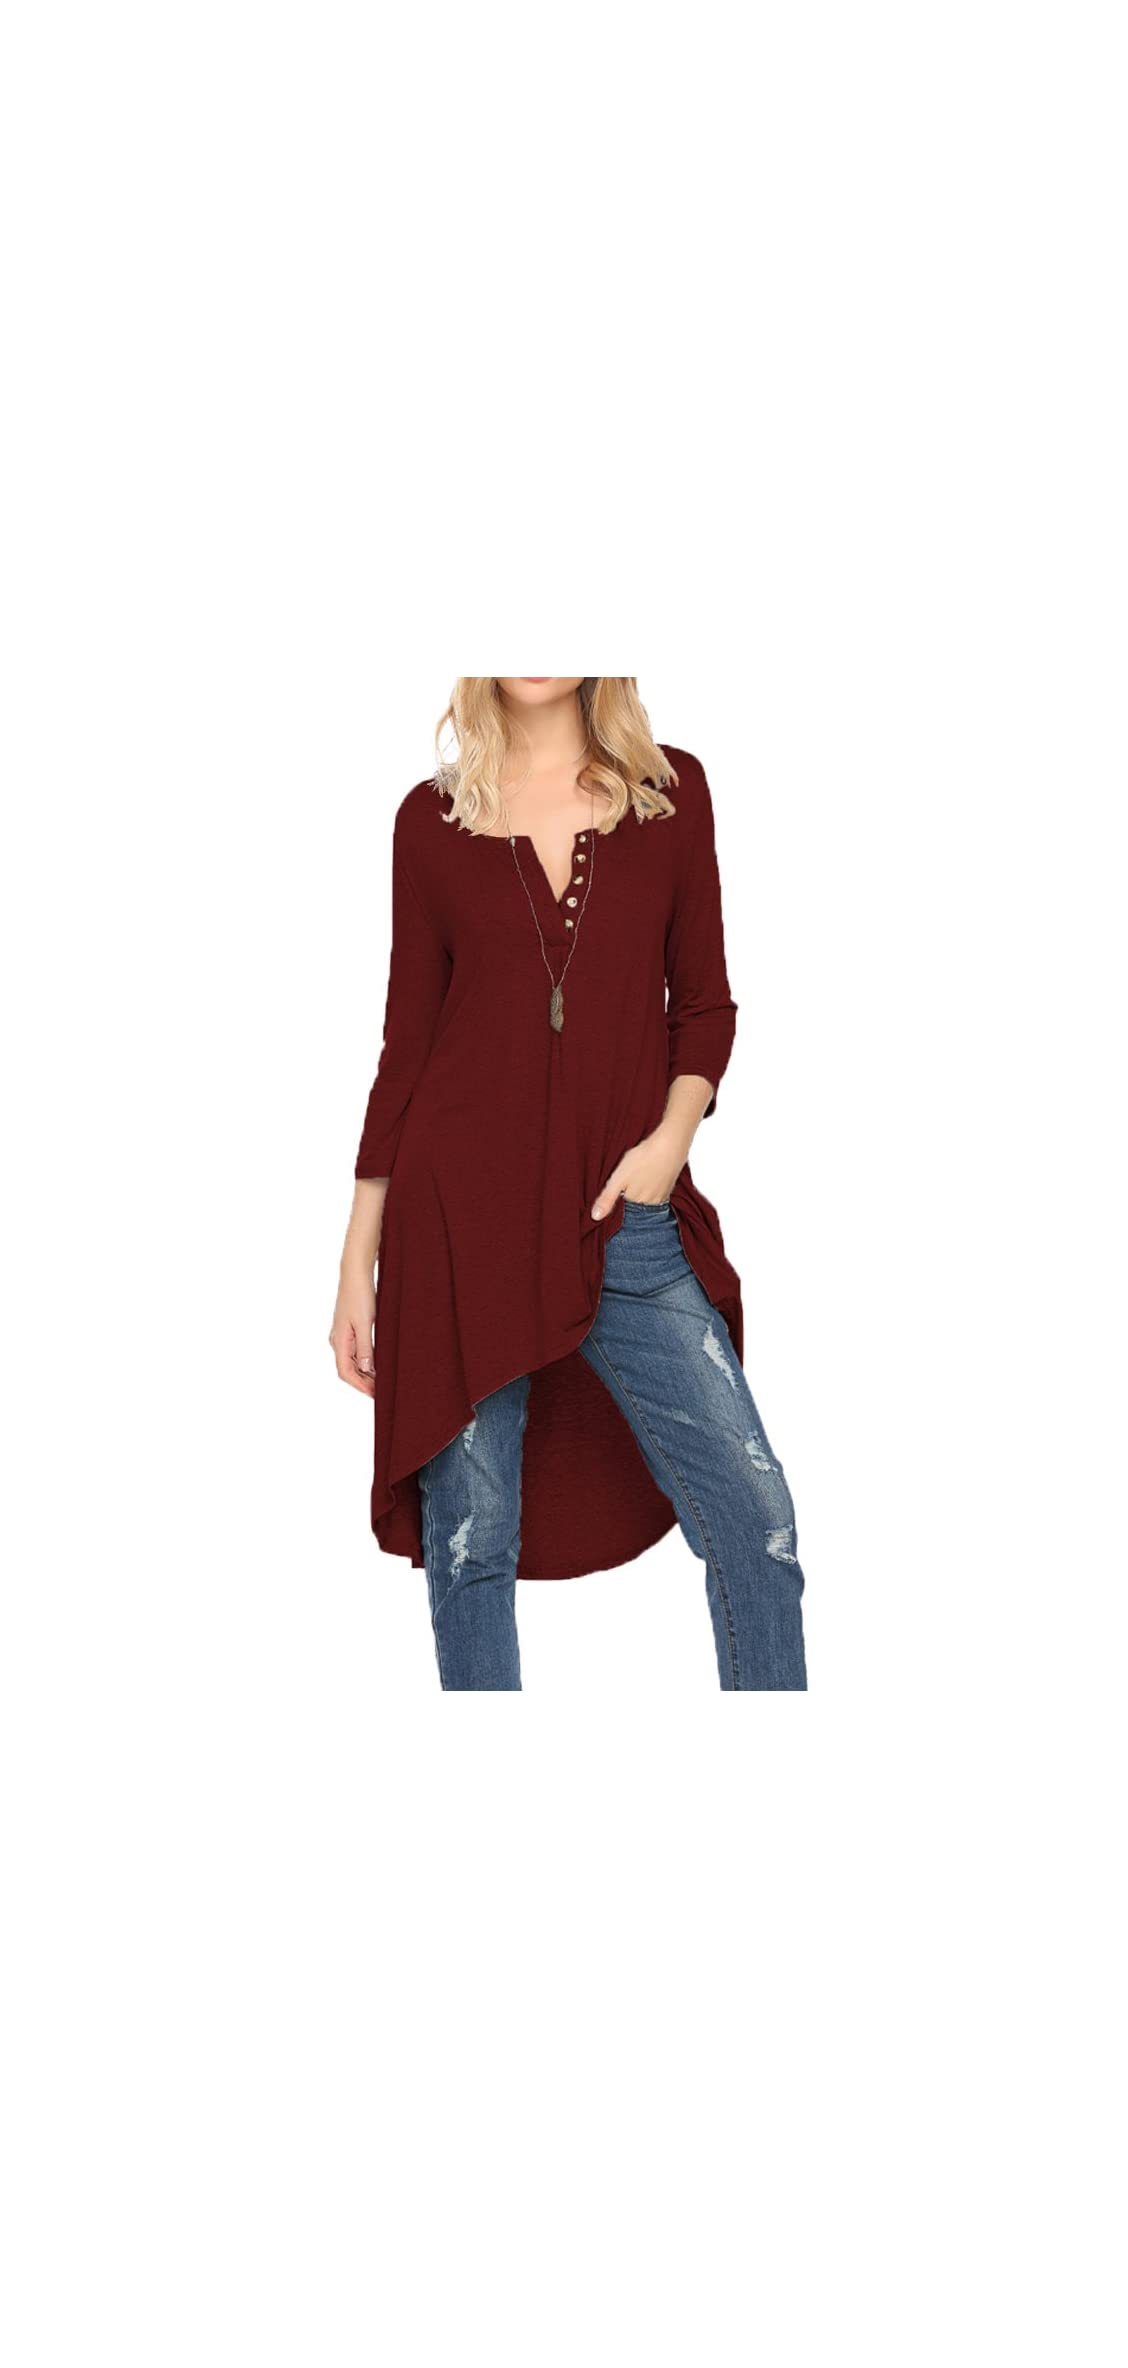 Women's Half Sleeve High Low Loose Fit Casual Tunic Tops